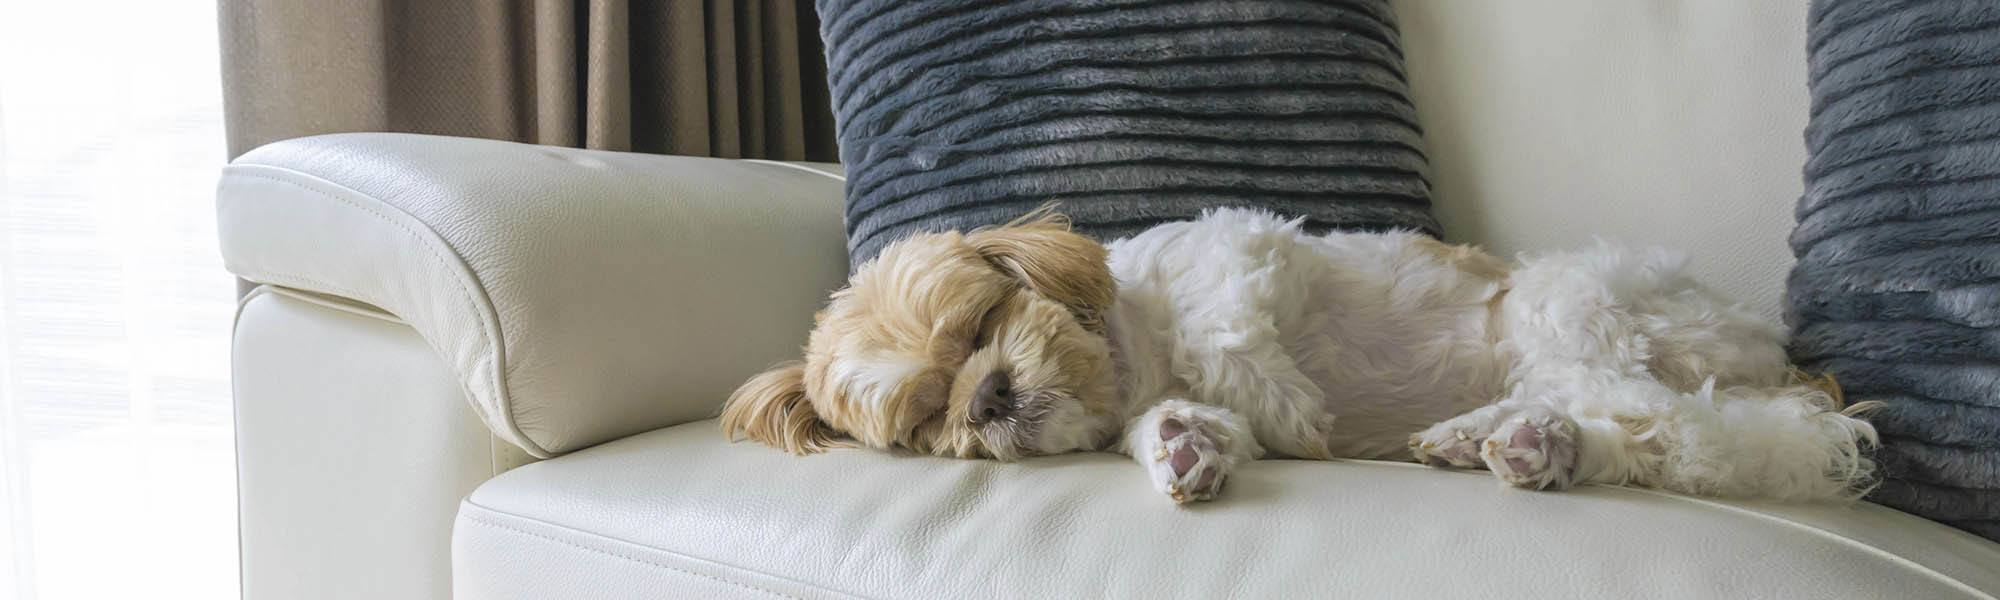 Pet friendly apartments in Stafford